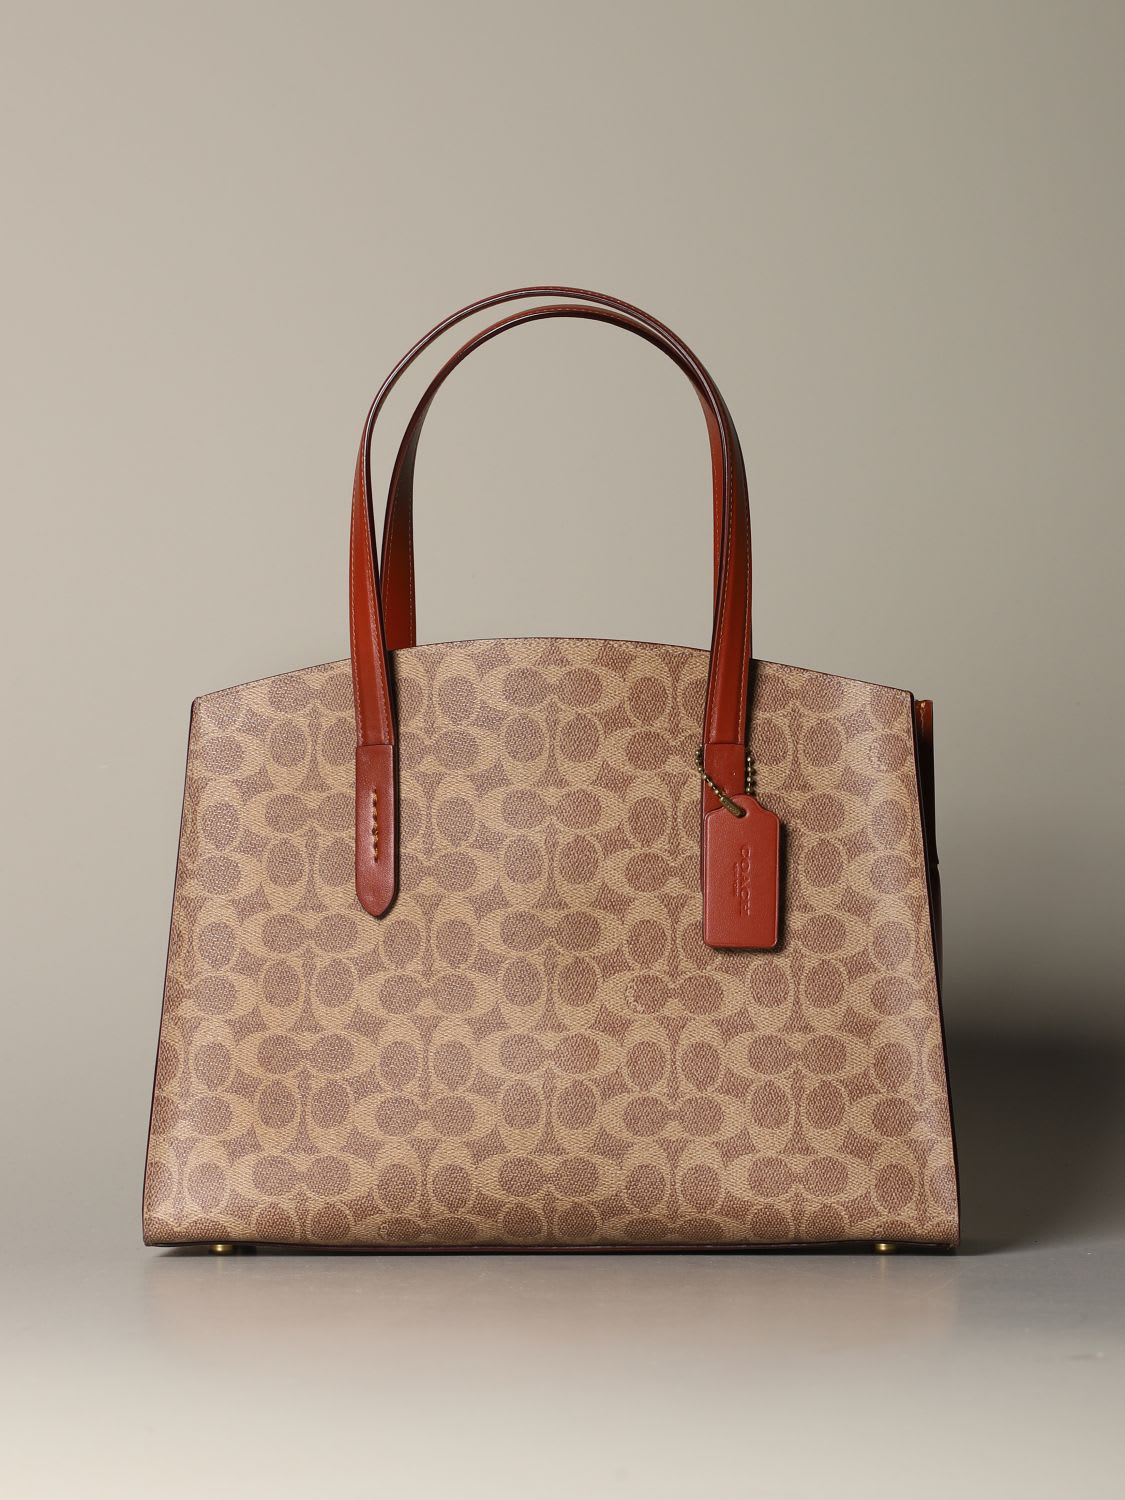 Coach Tote Bags Charlie Coach Bag In Logoed Canvas And Leather